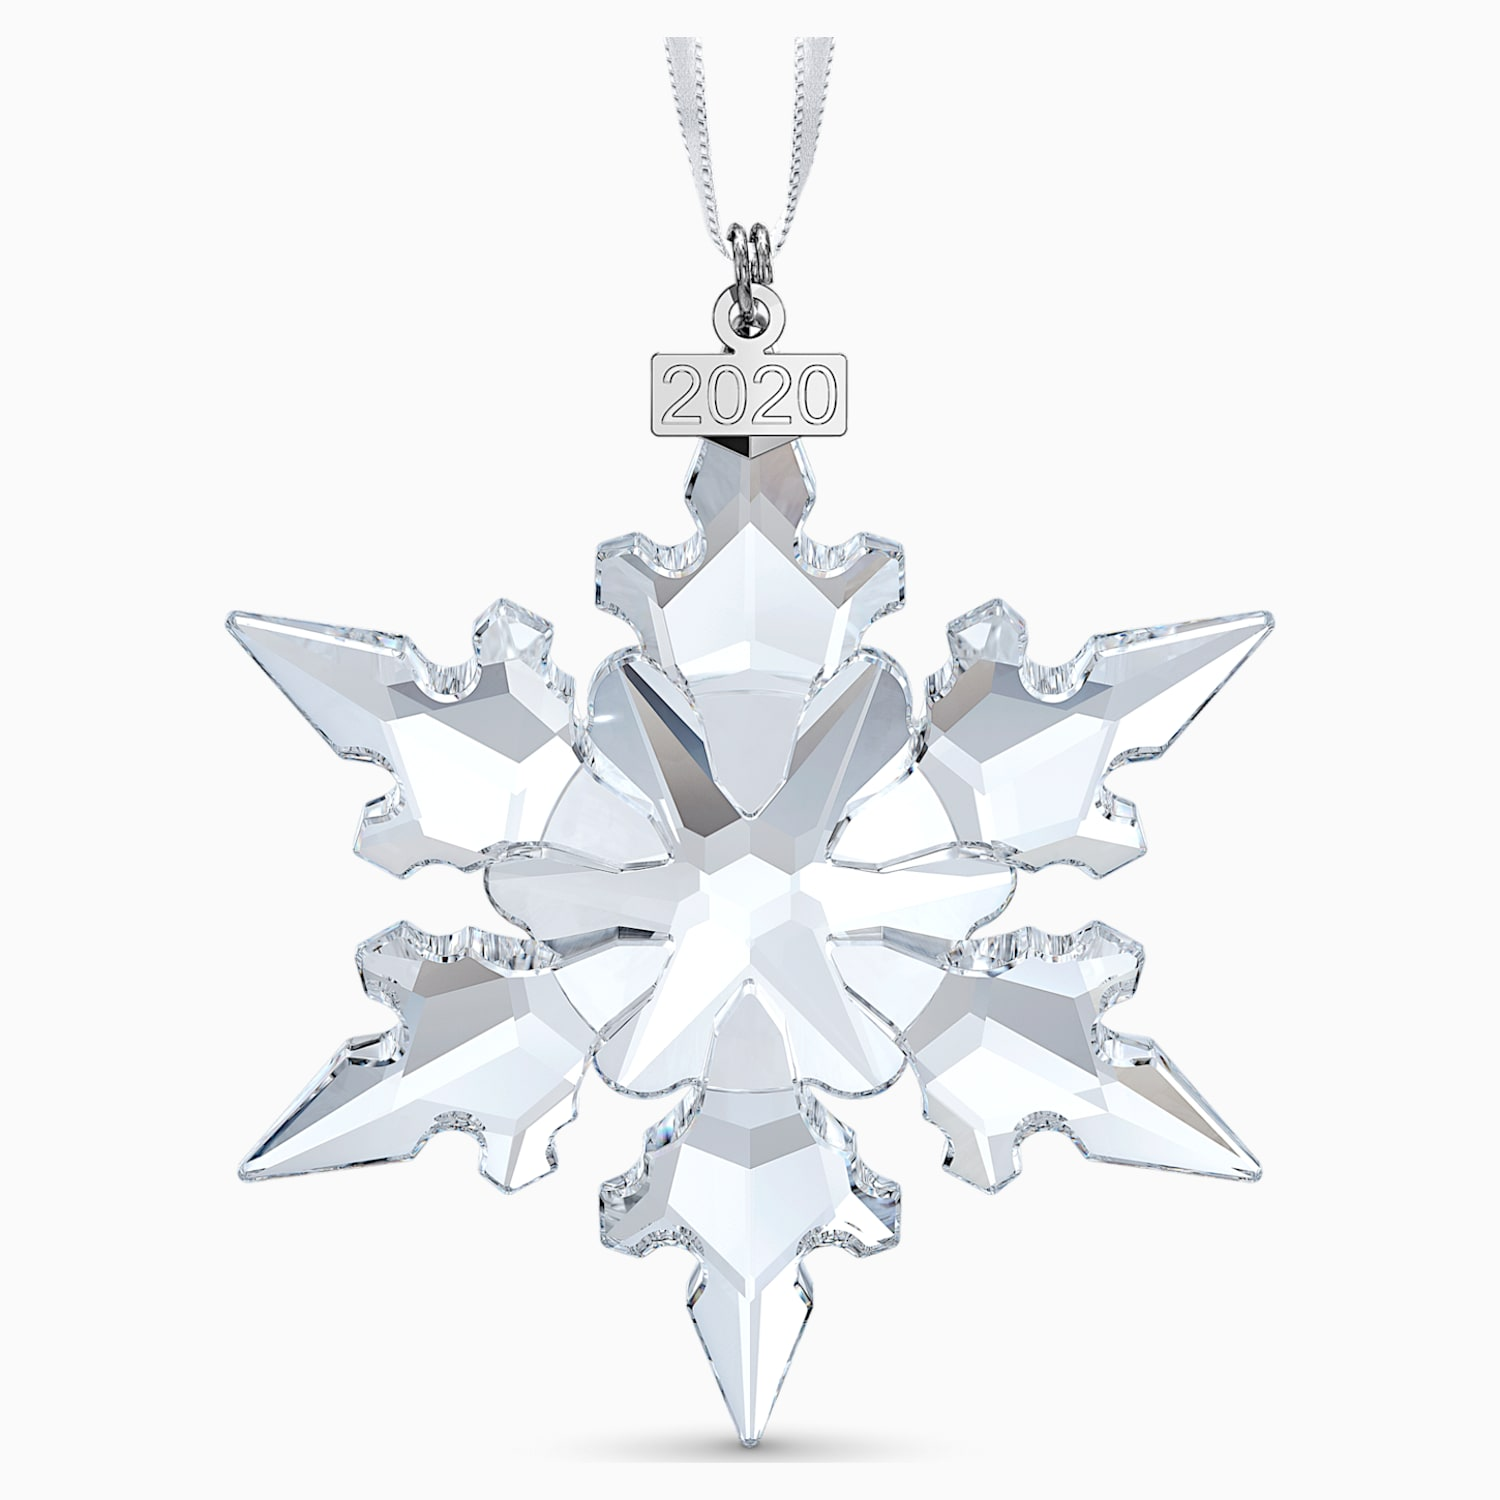 Crystal Christmas Ornaments 2020 Annual Edition Ornament 2020 | Swarovski.com